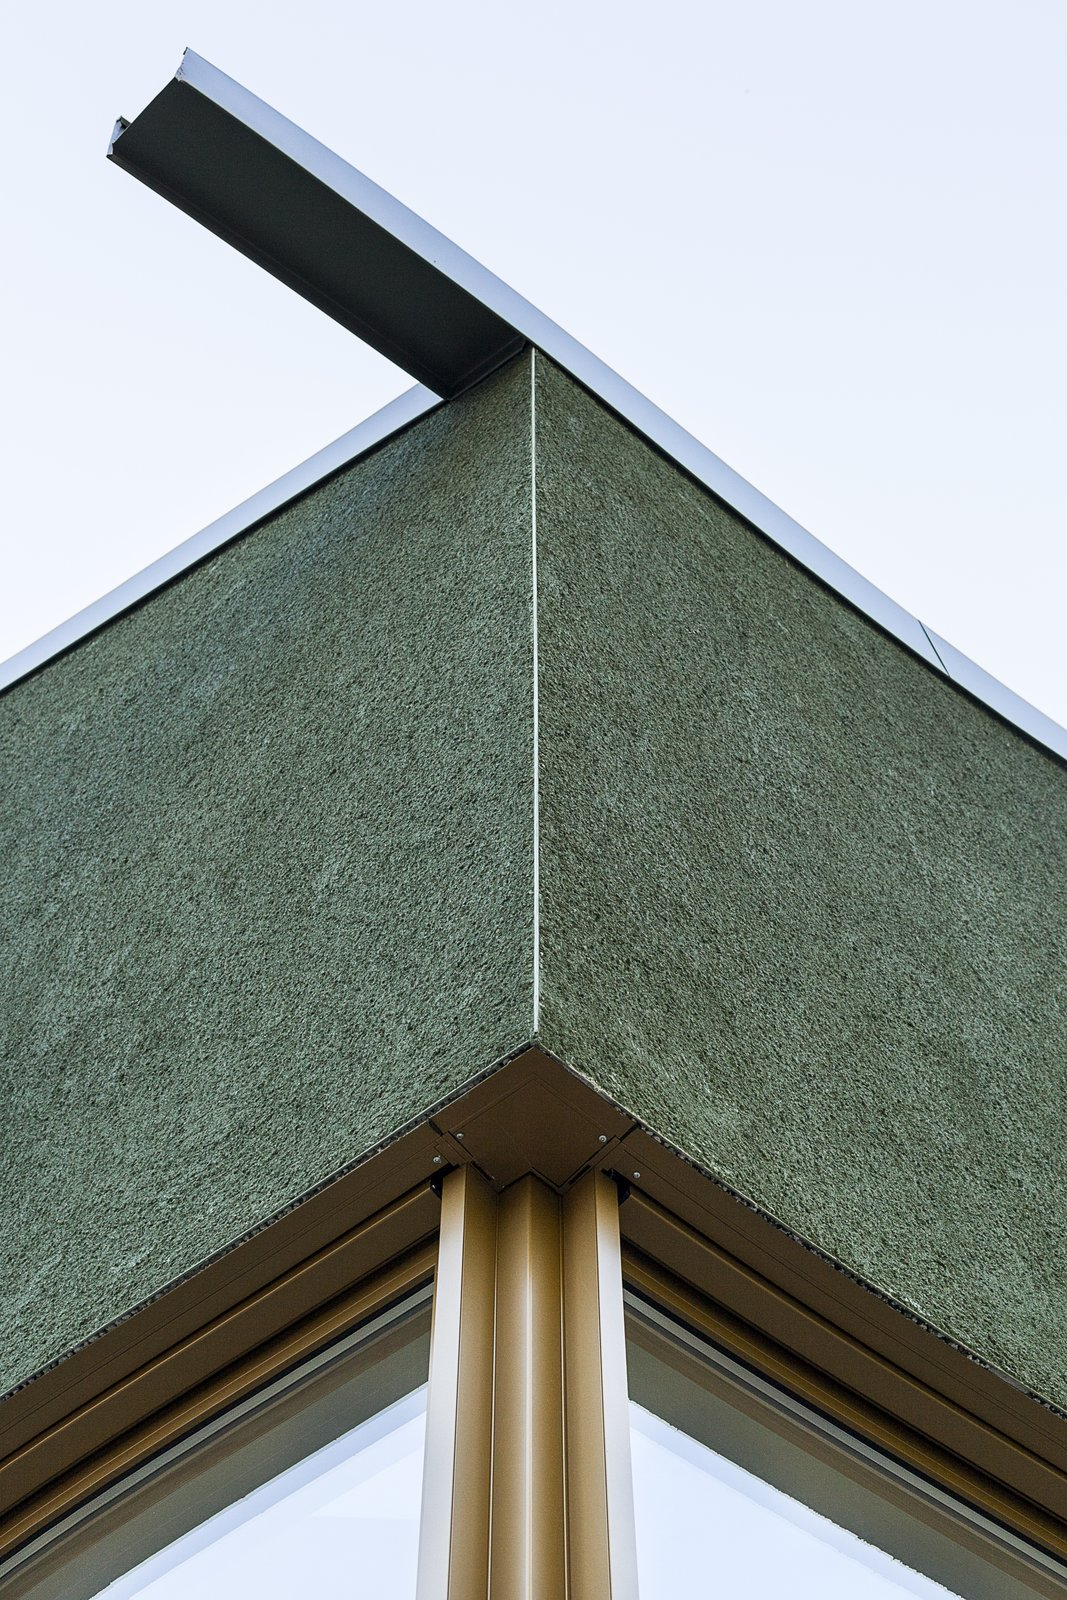 Exterior rainwater spout detail  Haus P by Project Architecture Company